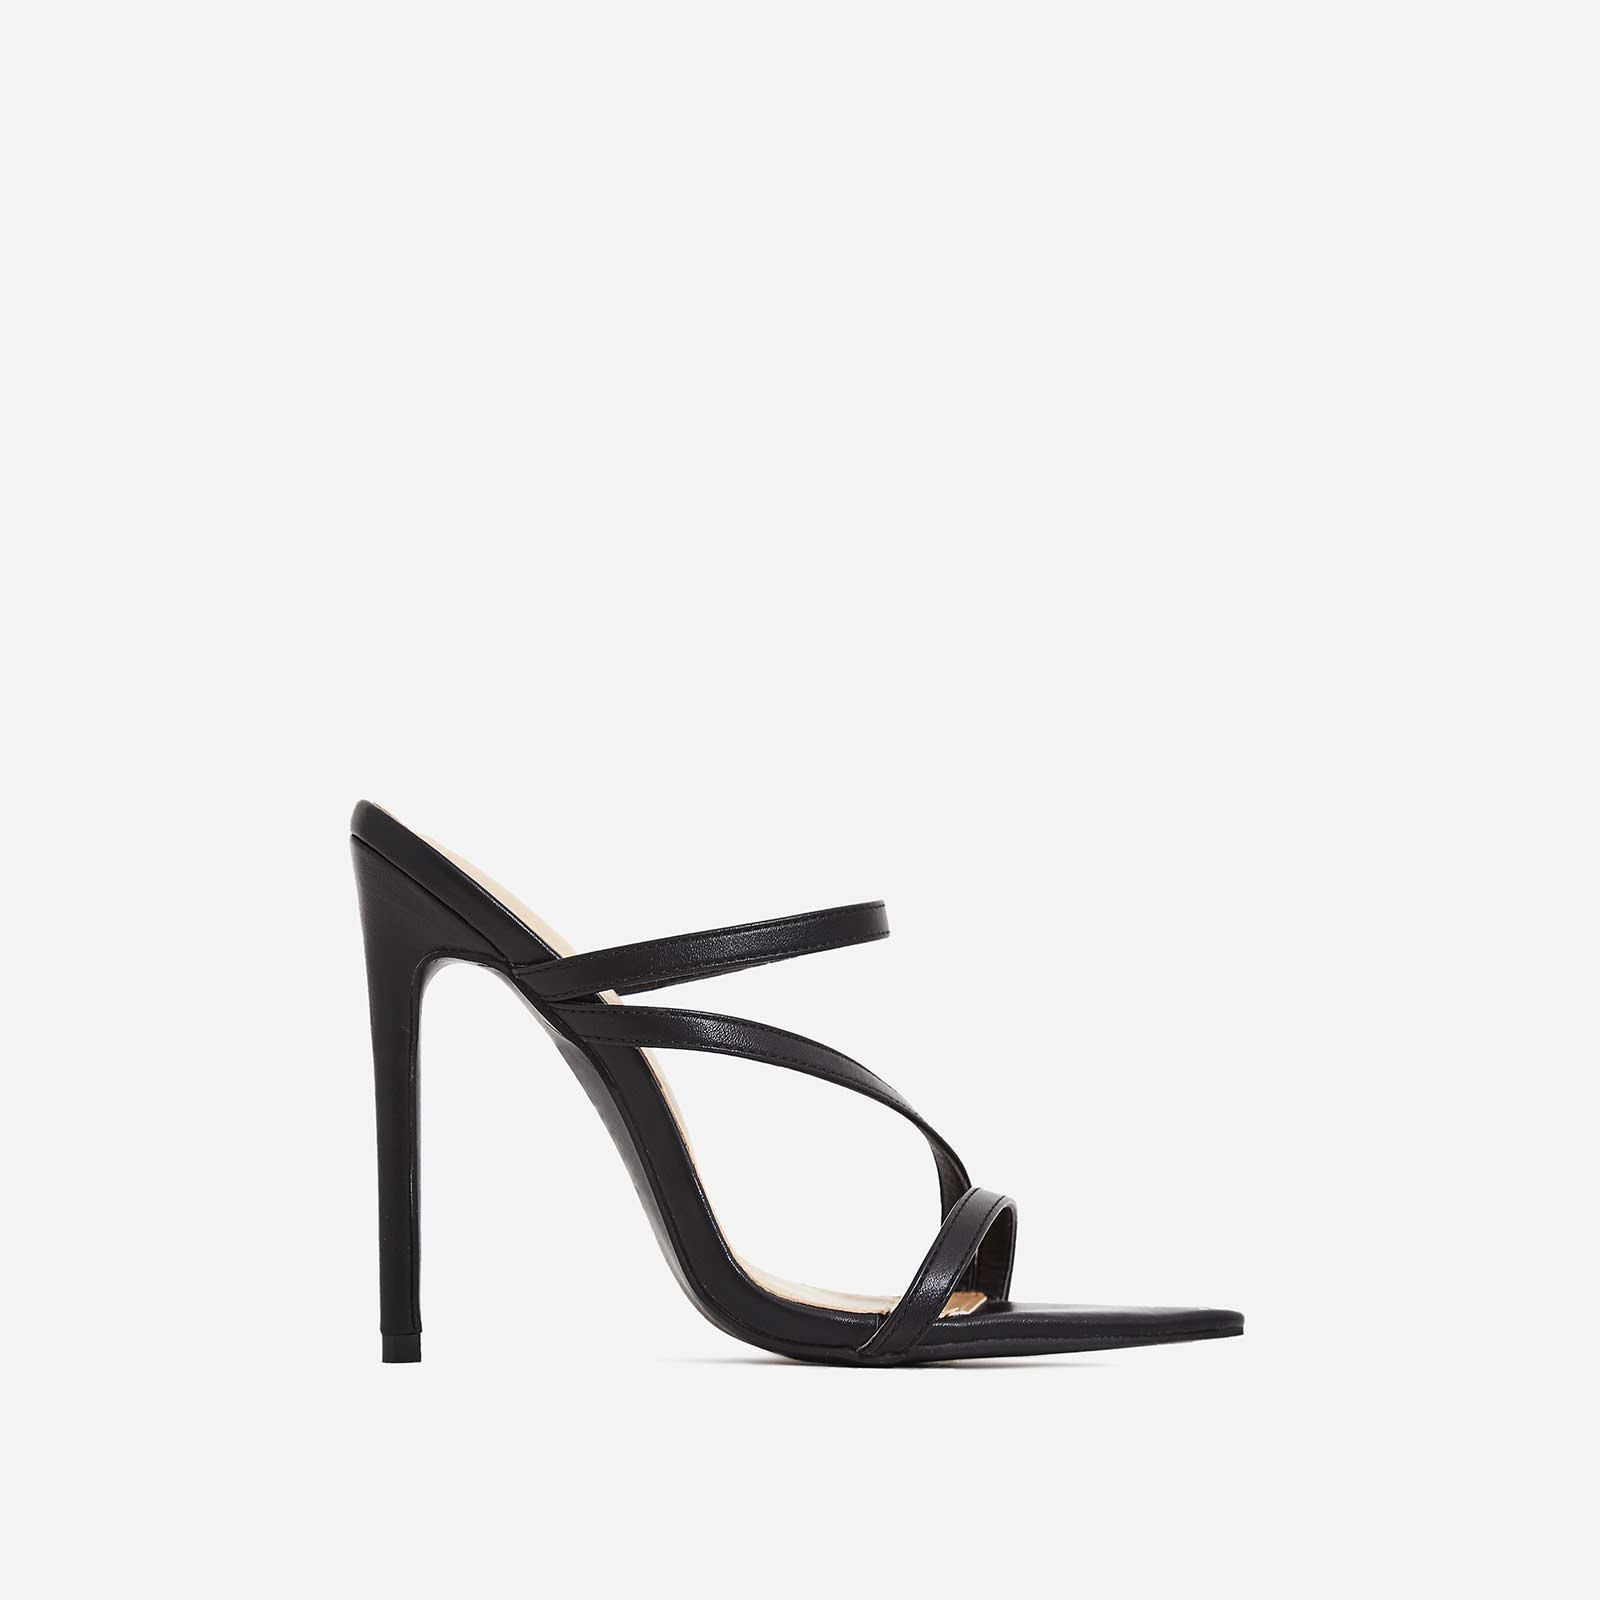 Aria Toe Strap Heel Mule In Black Faux Leather